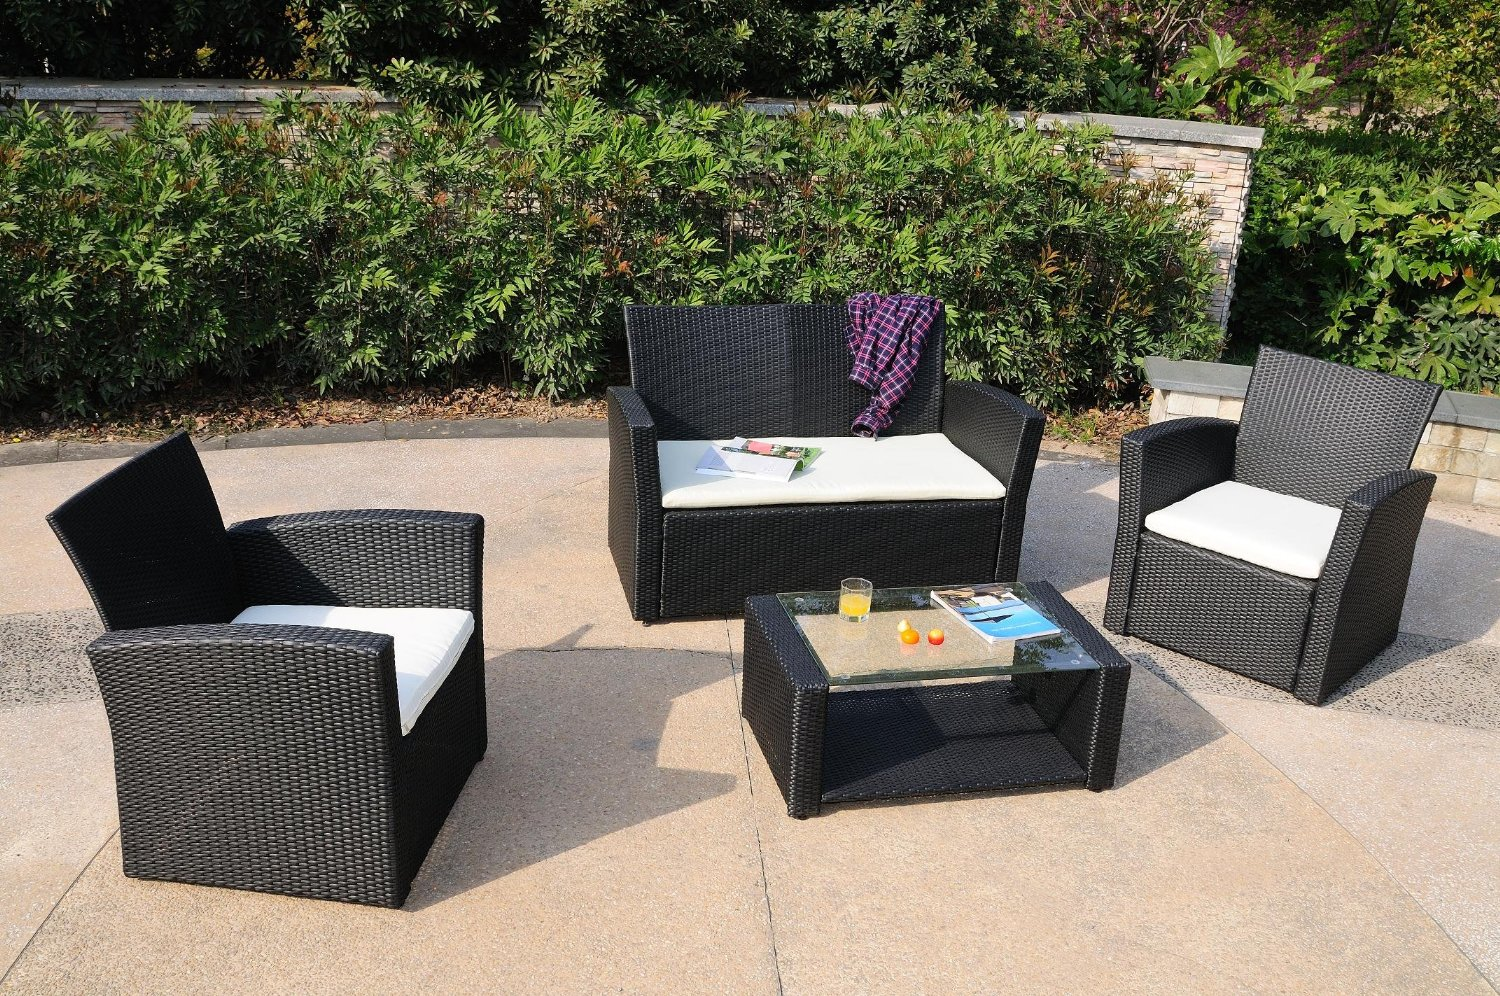 Rattan Garden Furniture Set engaging resin wicker outdoor furniture 21 patio table set modern DMWFJME